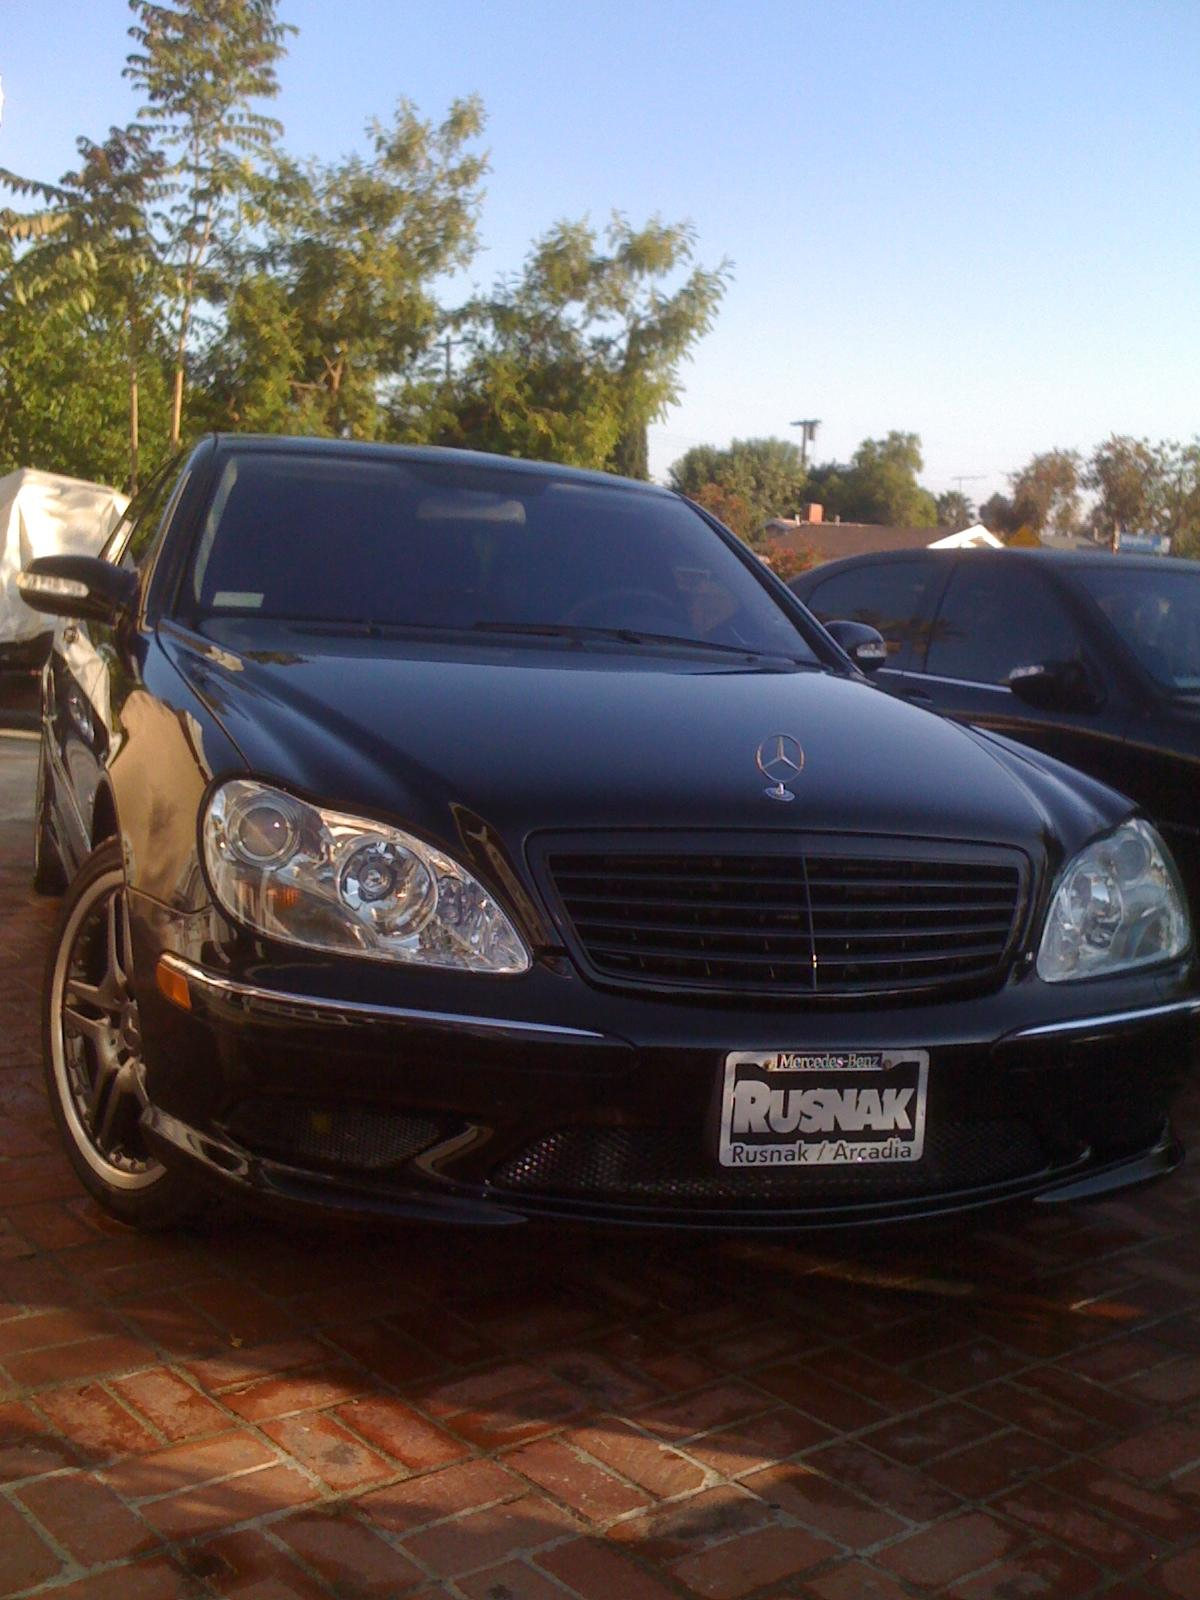 v12ttamg 2006 mercedes benz s classs65 amg sedan 4d specs photos modification info at cardomain. Black Bedroom Furniture Sets. Home Design Ideas